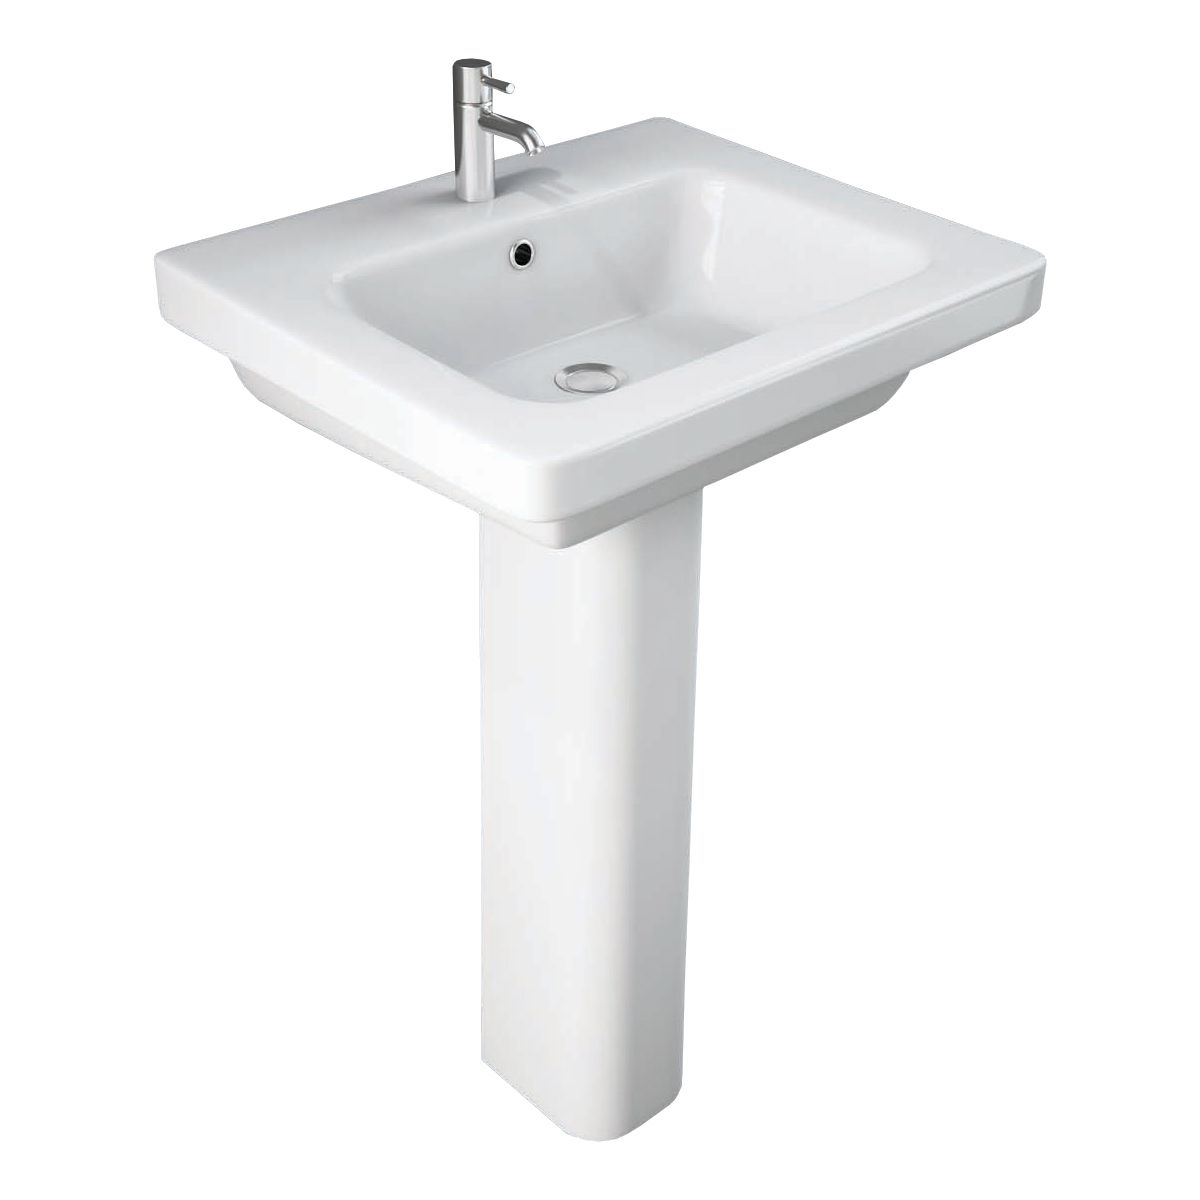 RAK Resort Basin 1 Tap Hole with Full Pedestal